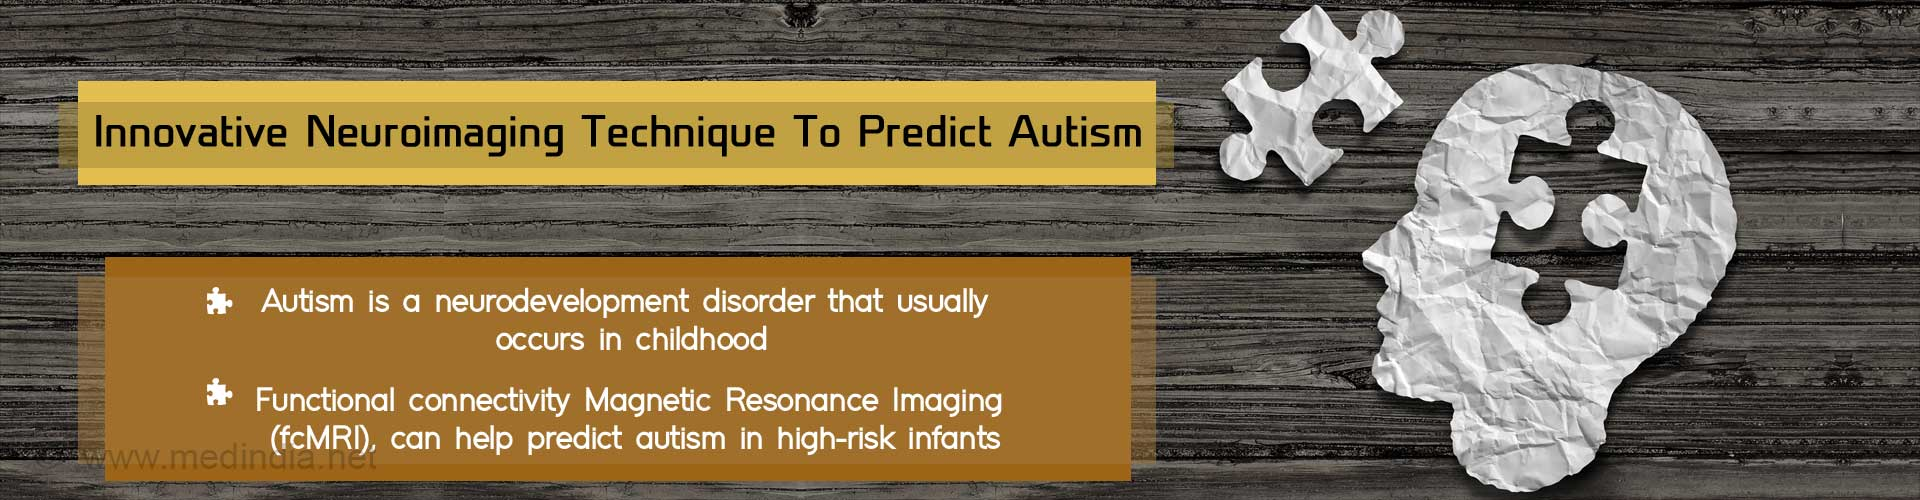 How to Predict Autism Among High-Risk Infants